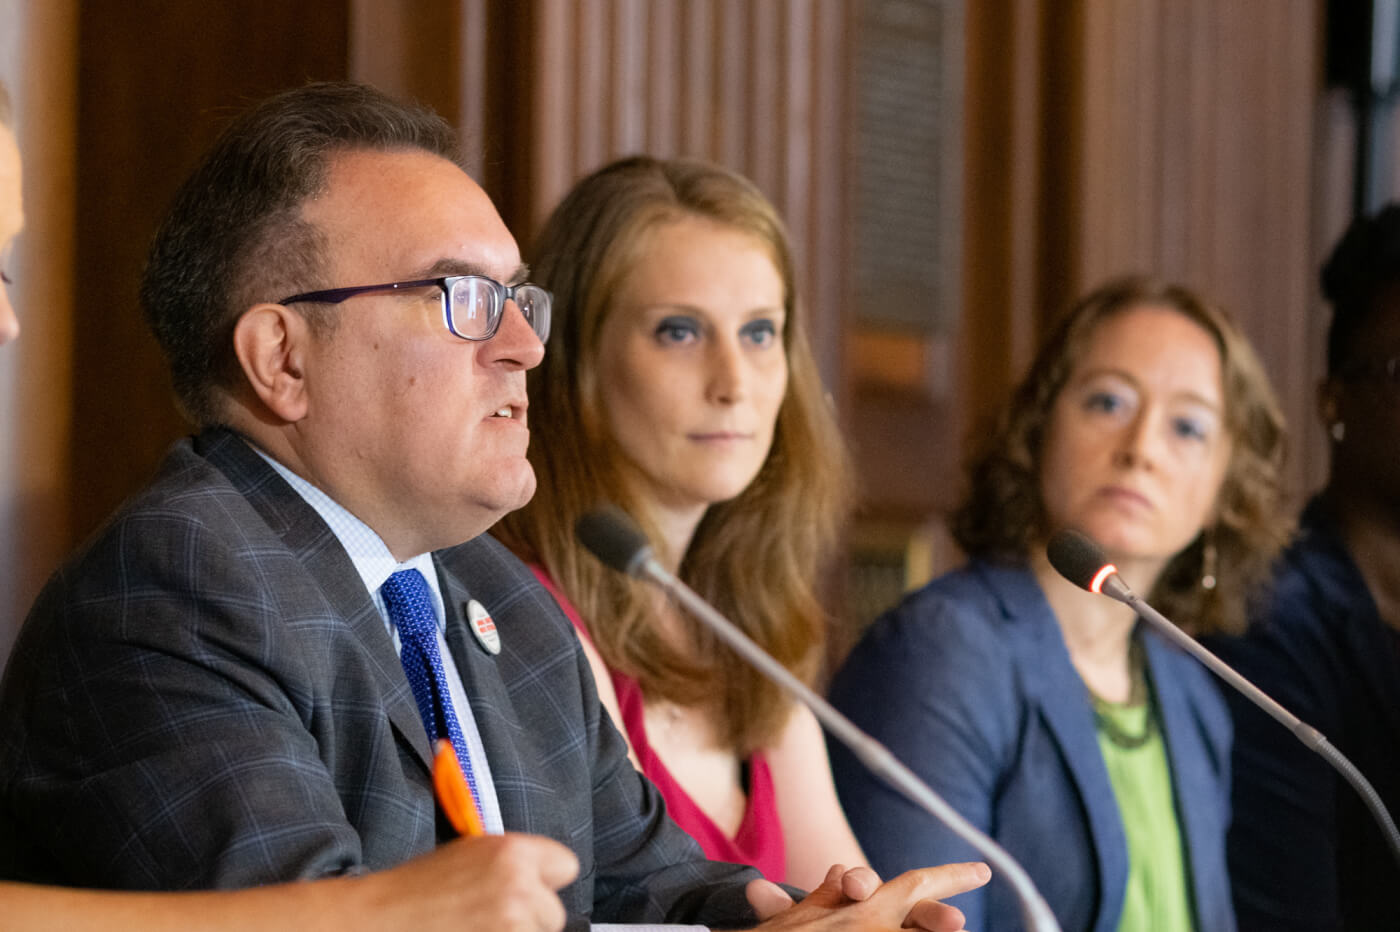 PETA scientist Dr. Amy Clippinger sits next to EPA Administrator Andrew Wheeler